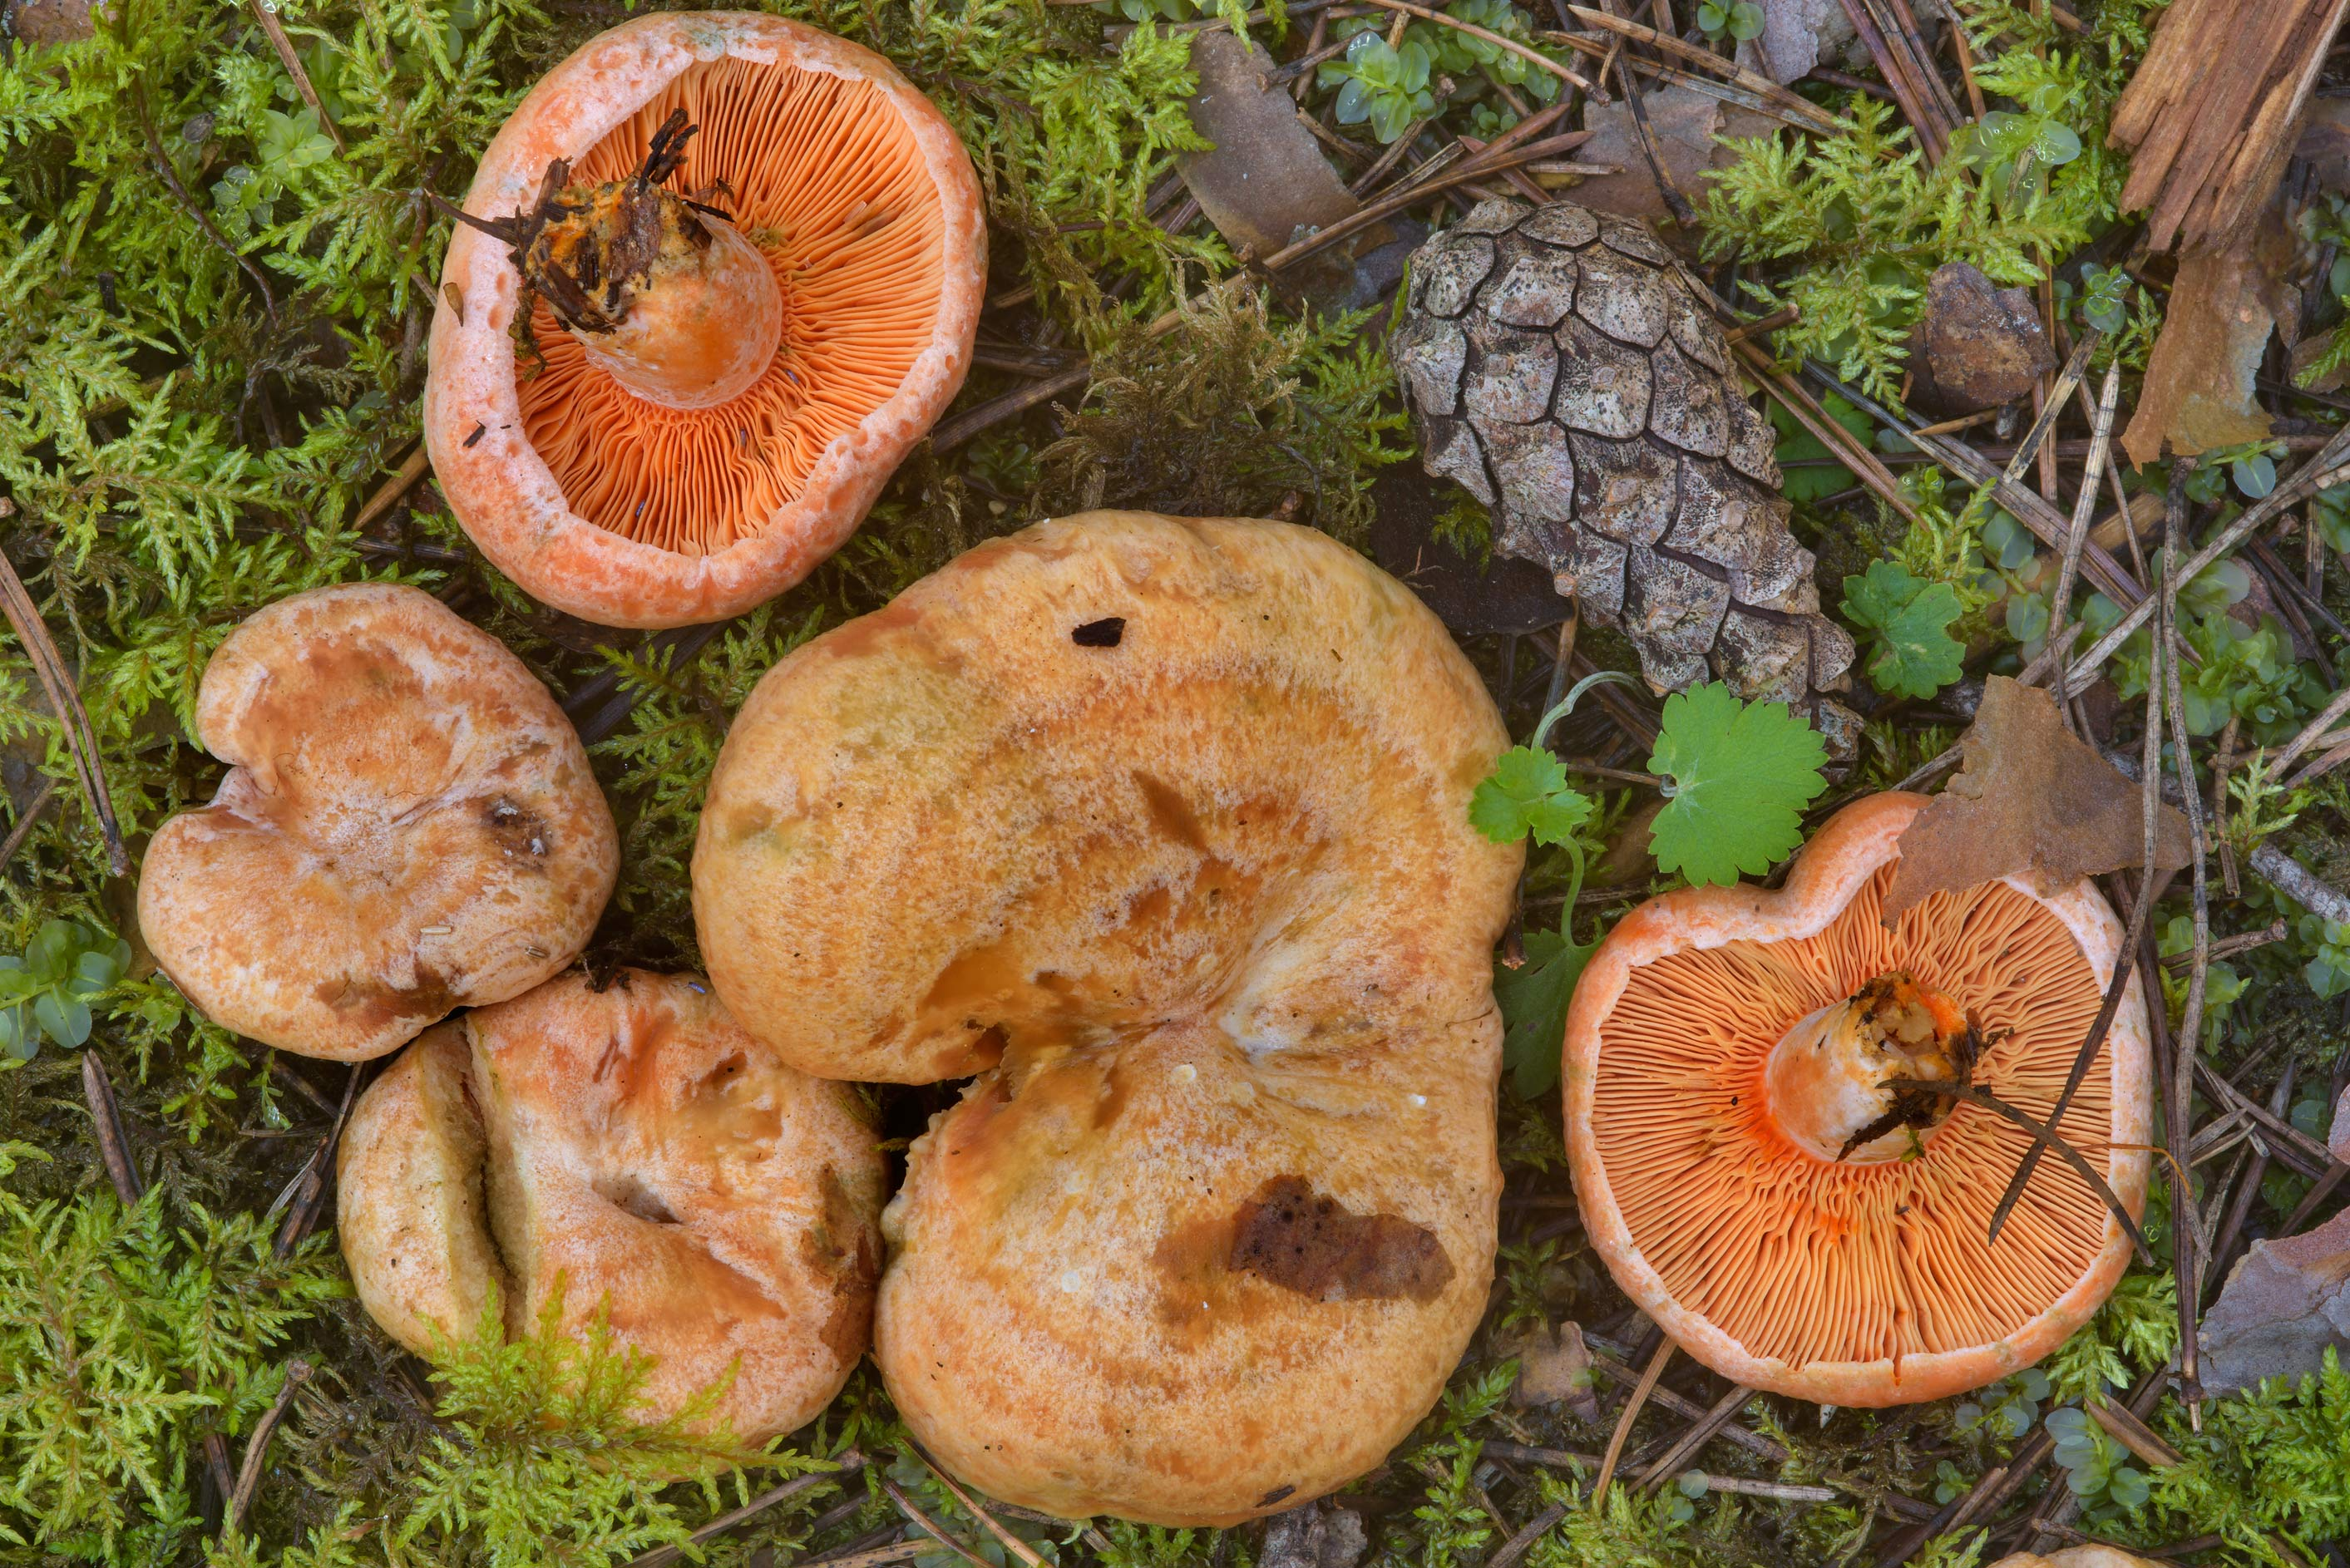 Milkcap mushrooms (Lactarius deterrimus, Russian...north-west from St.Petersburg, Russia